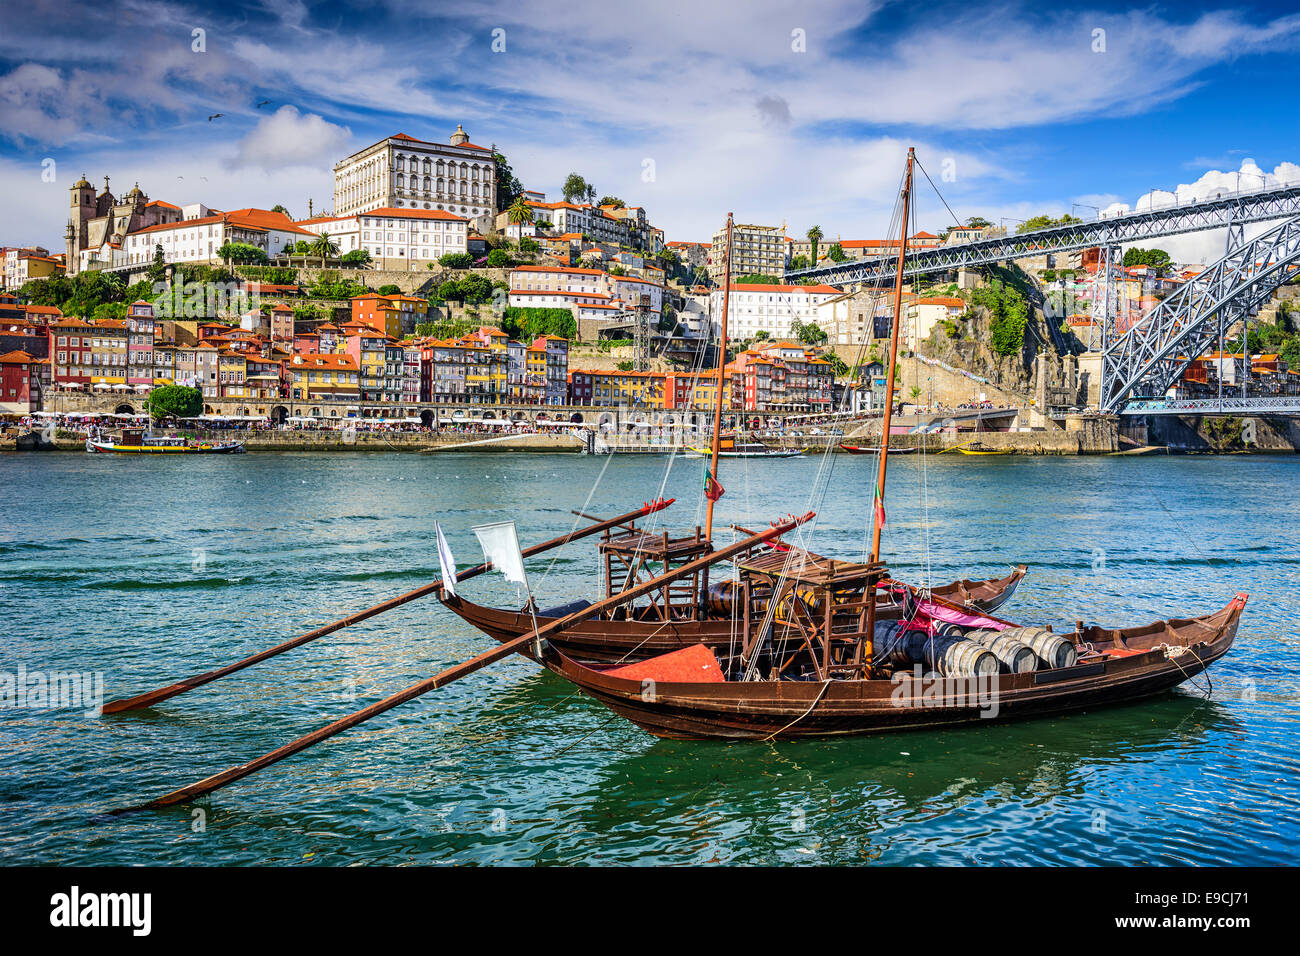 Porto, Portugal cityscape on the Douro River. Stock Photo